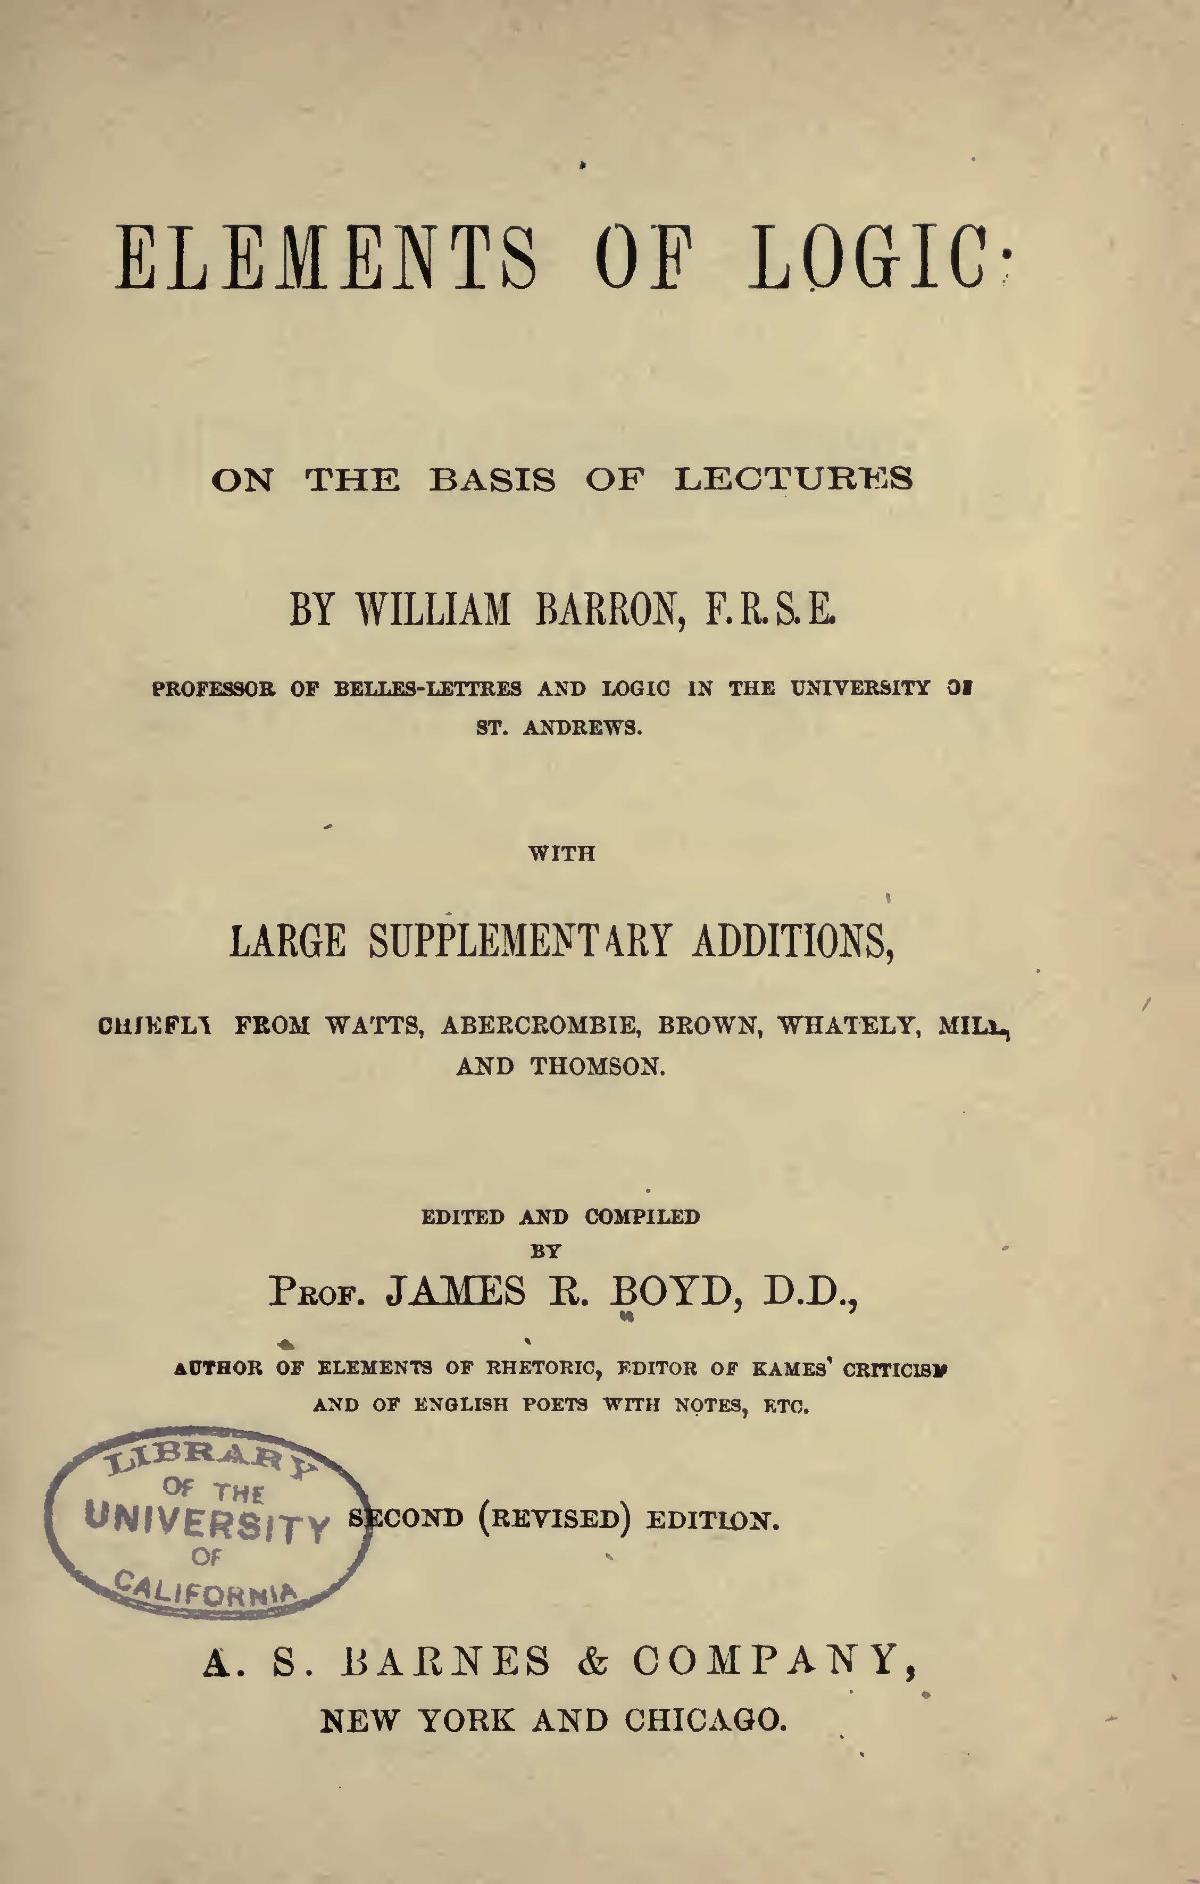 Boyd, James Robert, Elements of Logic Title Page.jpg